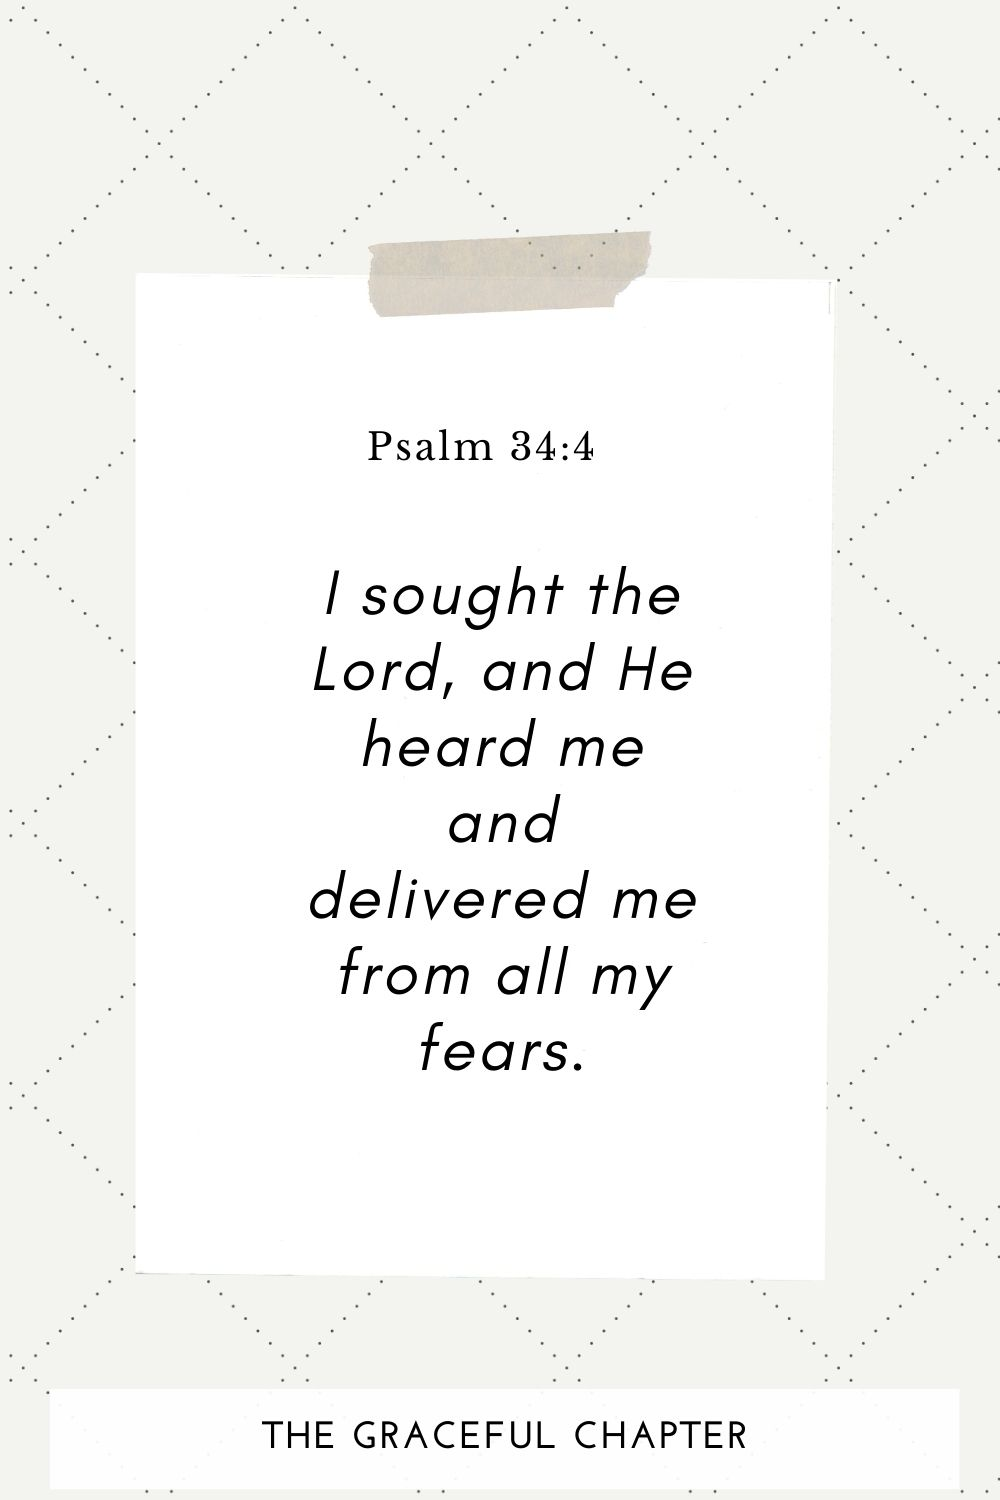 I sought the Lord, and He heard me and delivered me from all my fears. Psalm 34:4